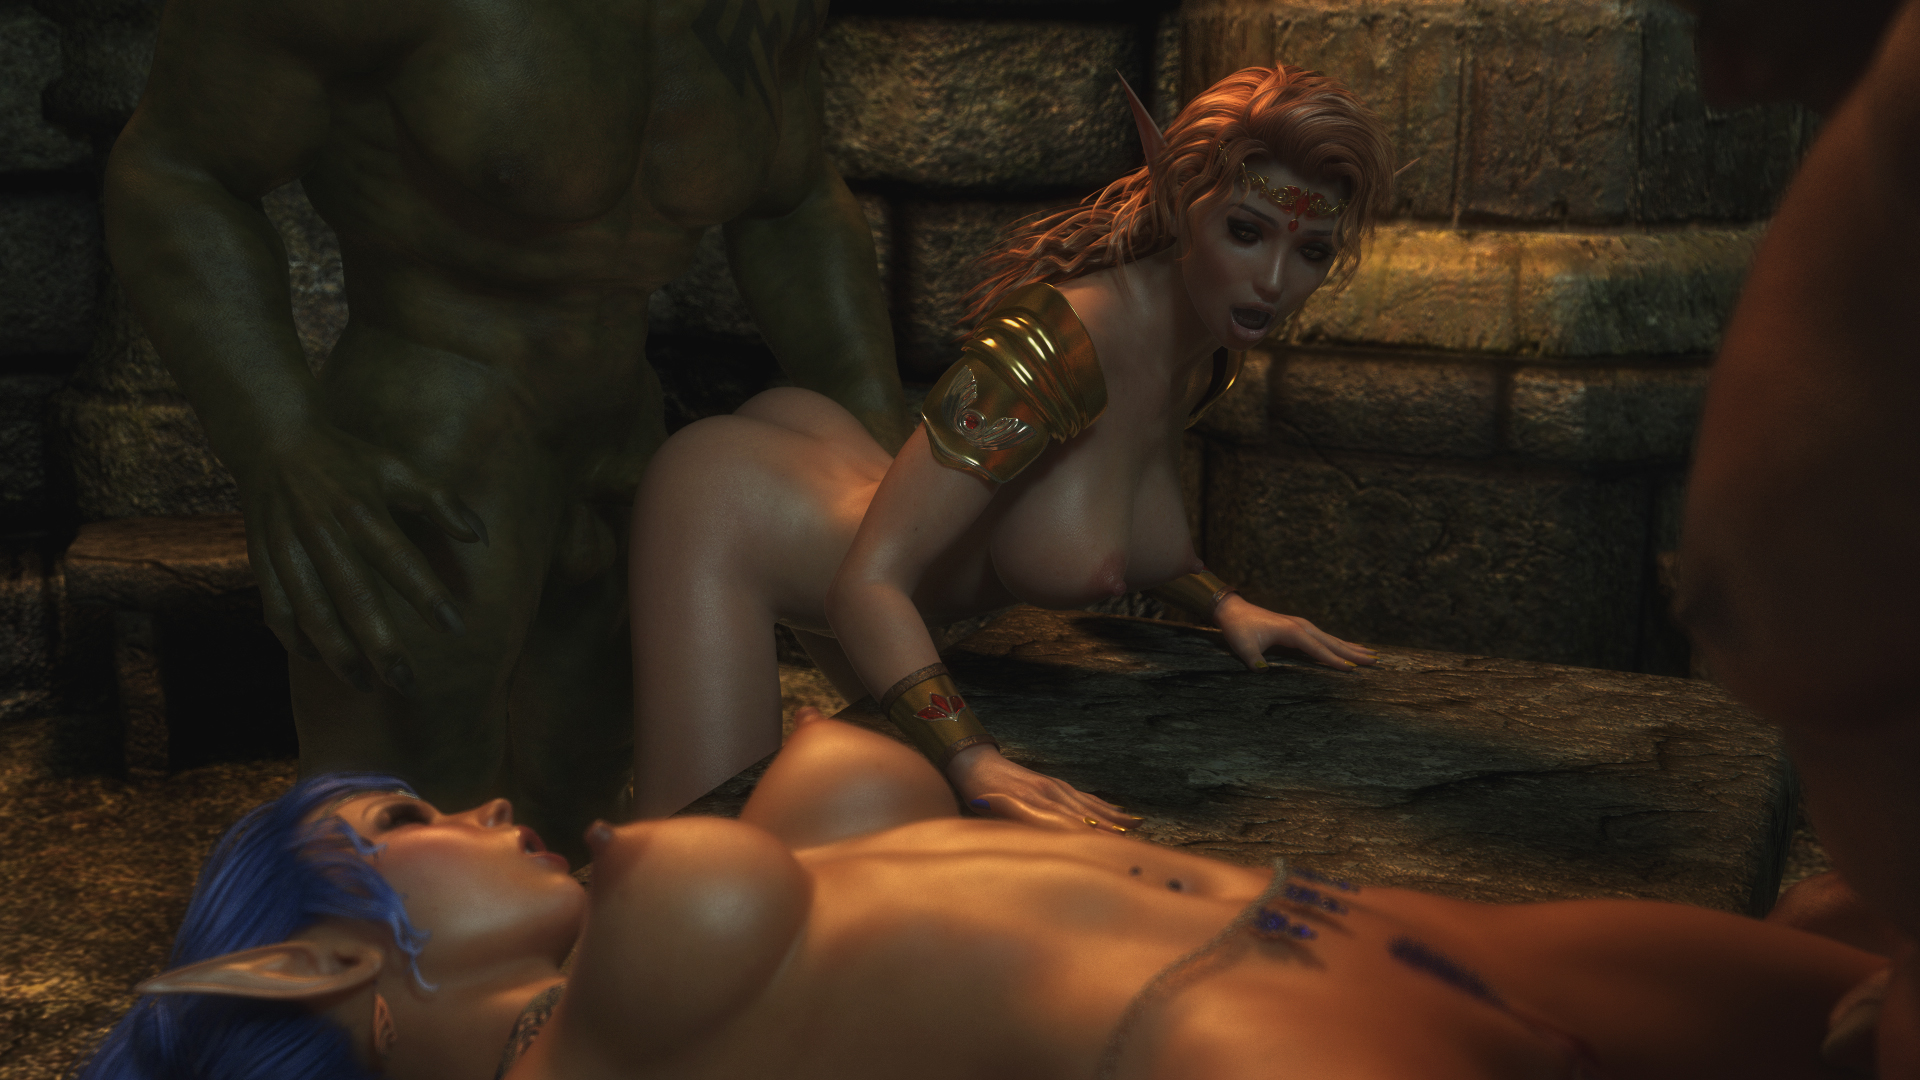 Monster's dungeon sex hentia scenes